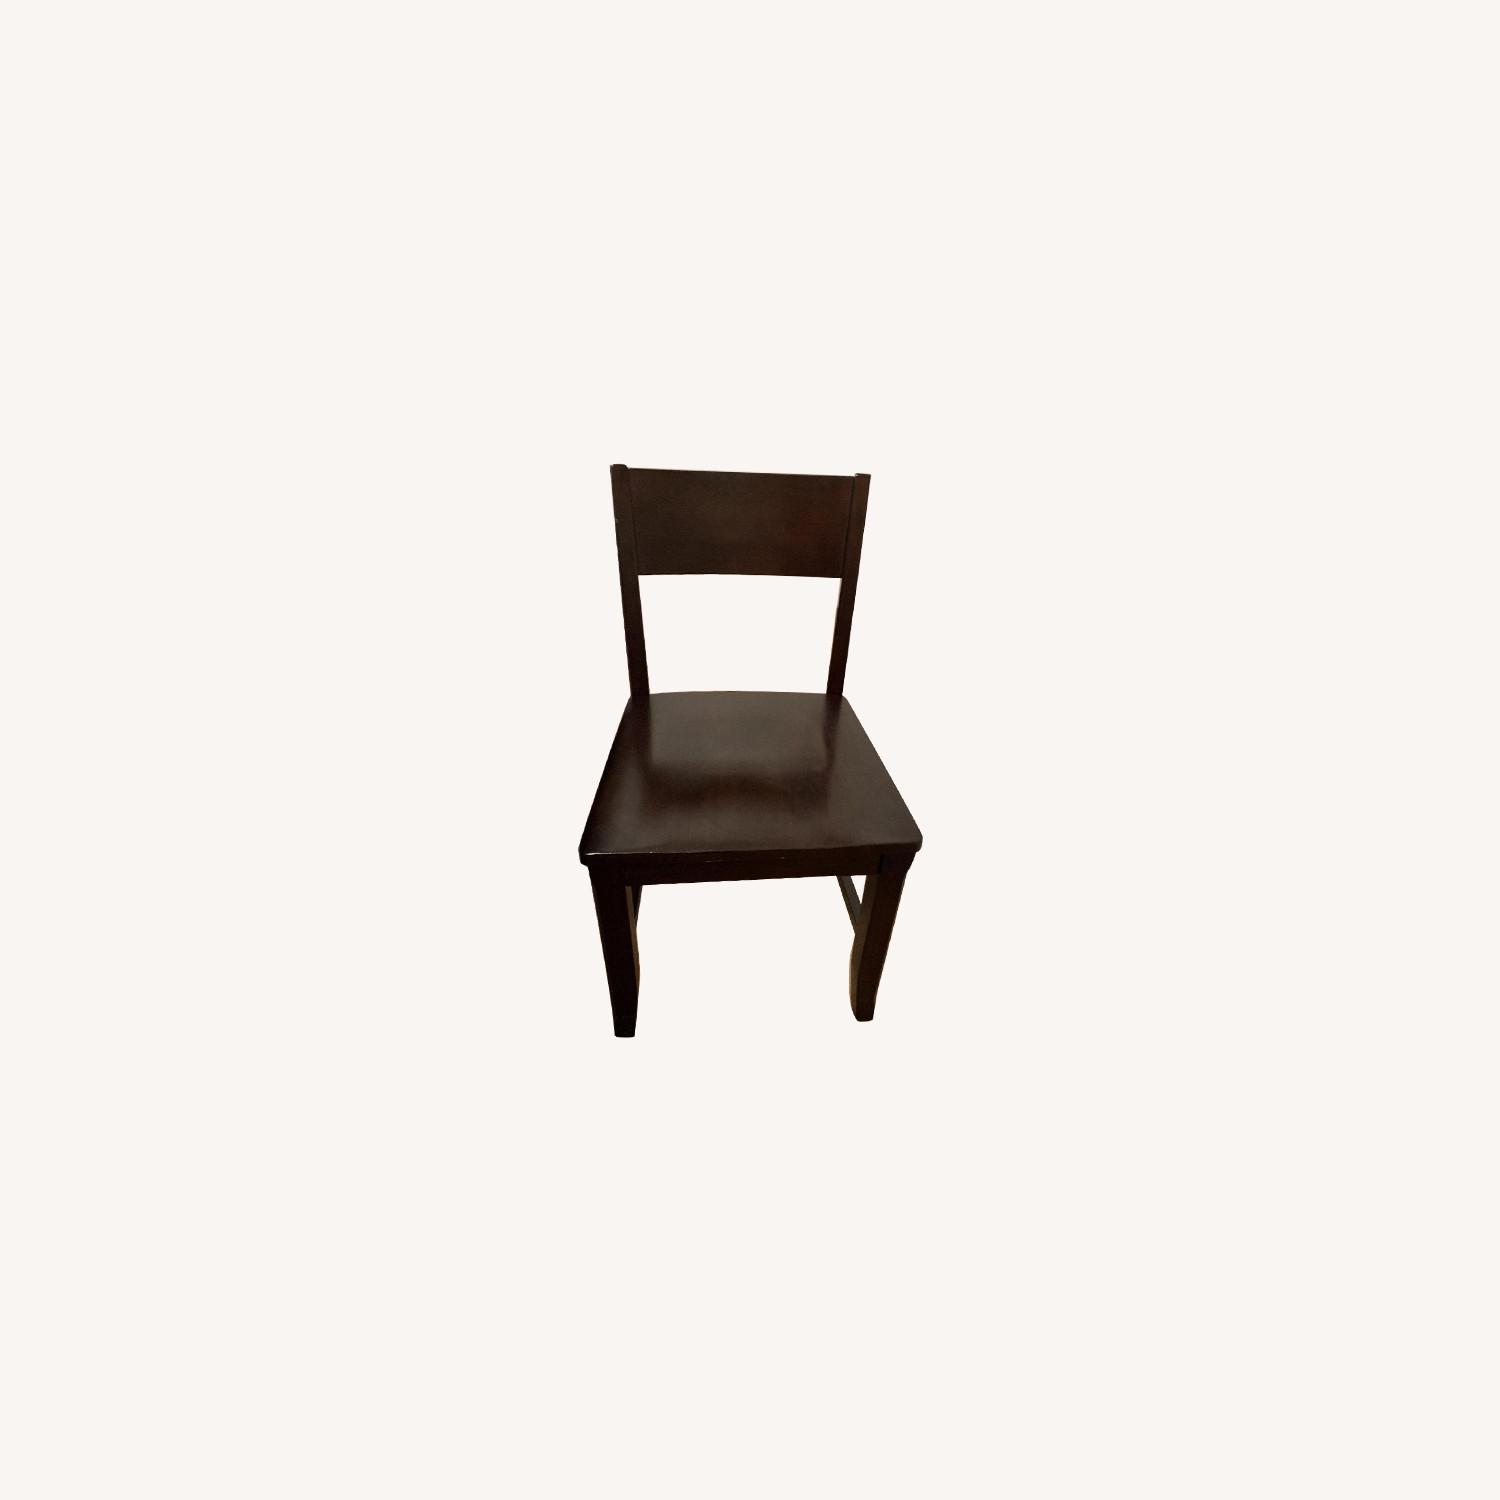 Montreal Espresso Wood Chairs - image-0